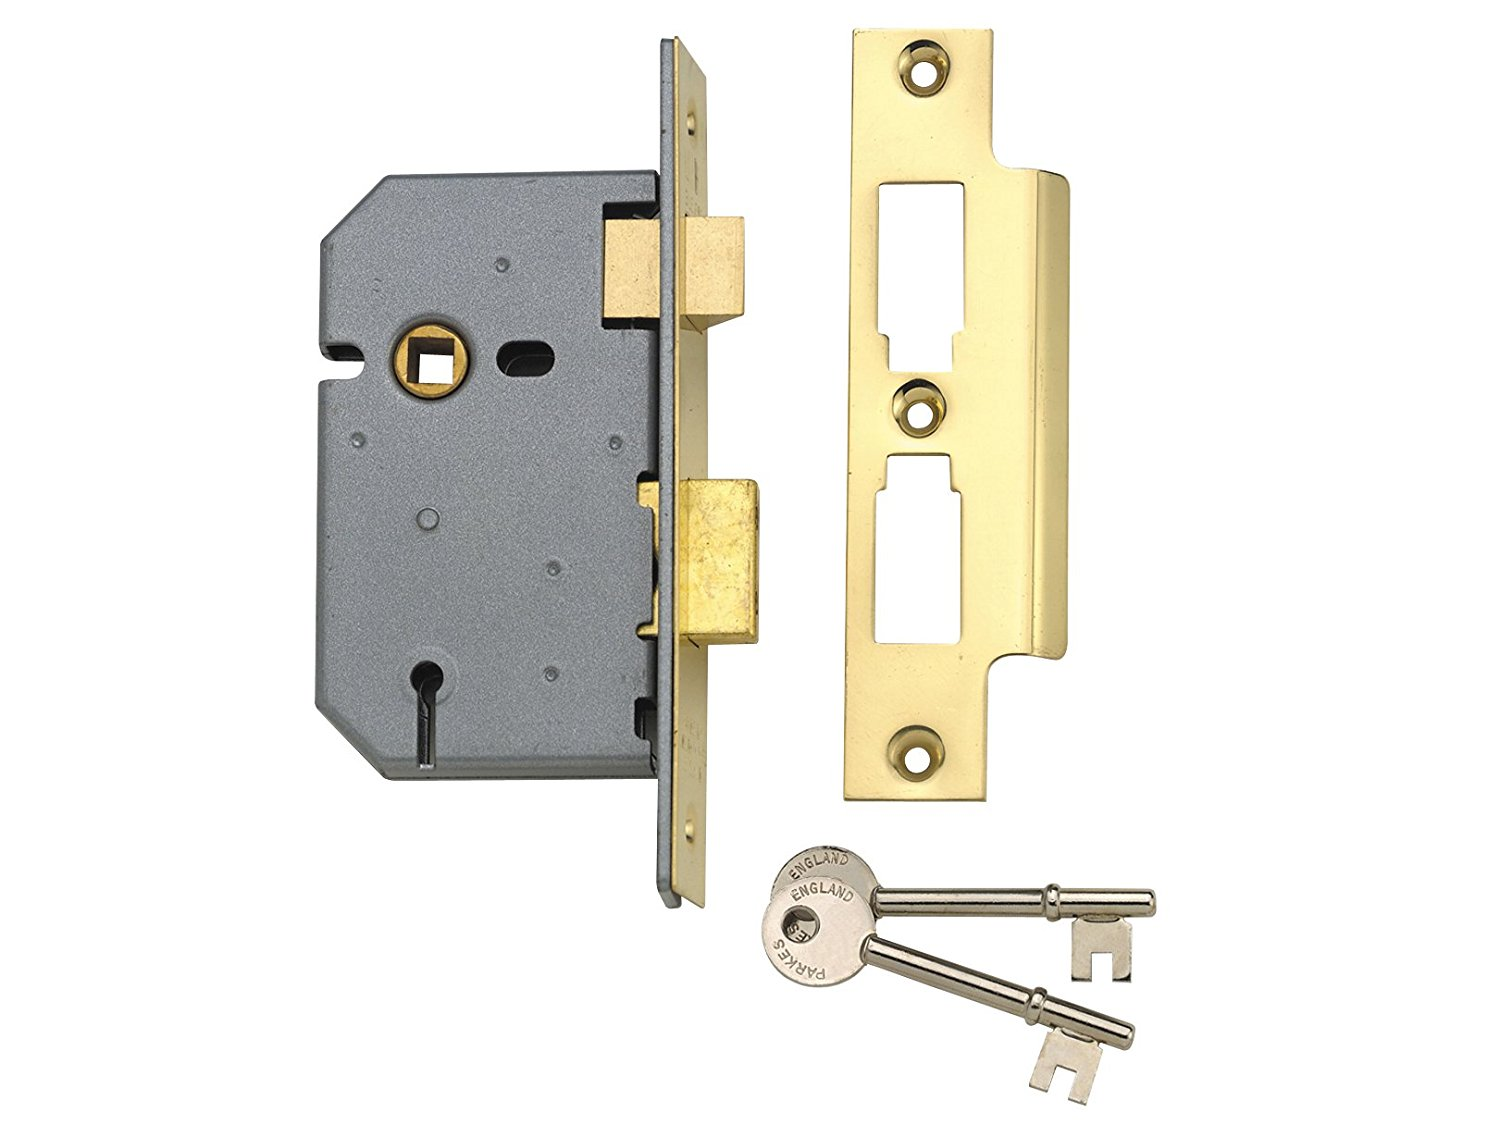 The classic household mortice lock